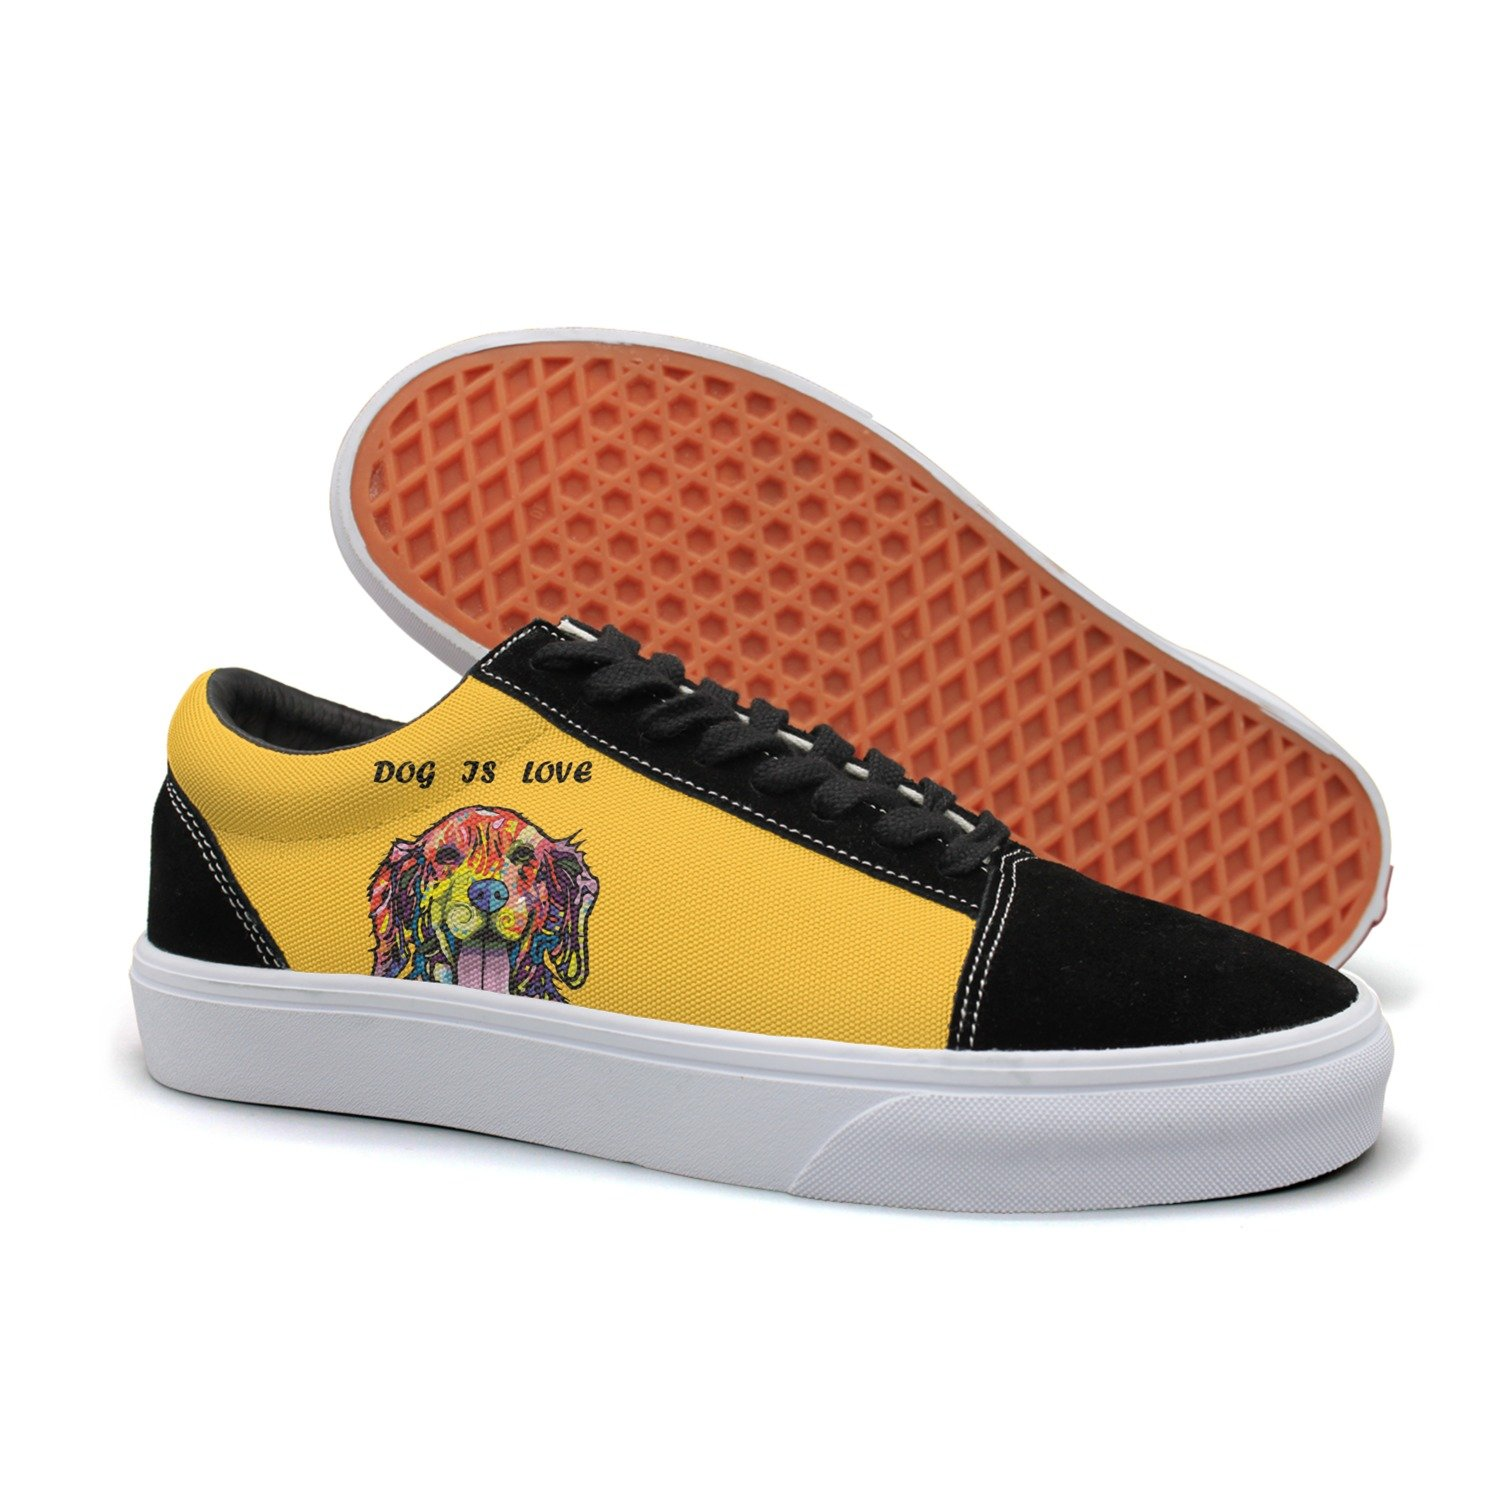 VCERTHDF Dog Is Love Suede Slip-On Shoe Mens